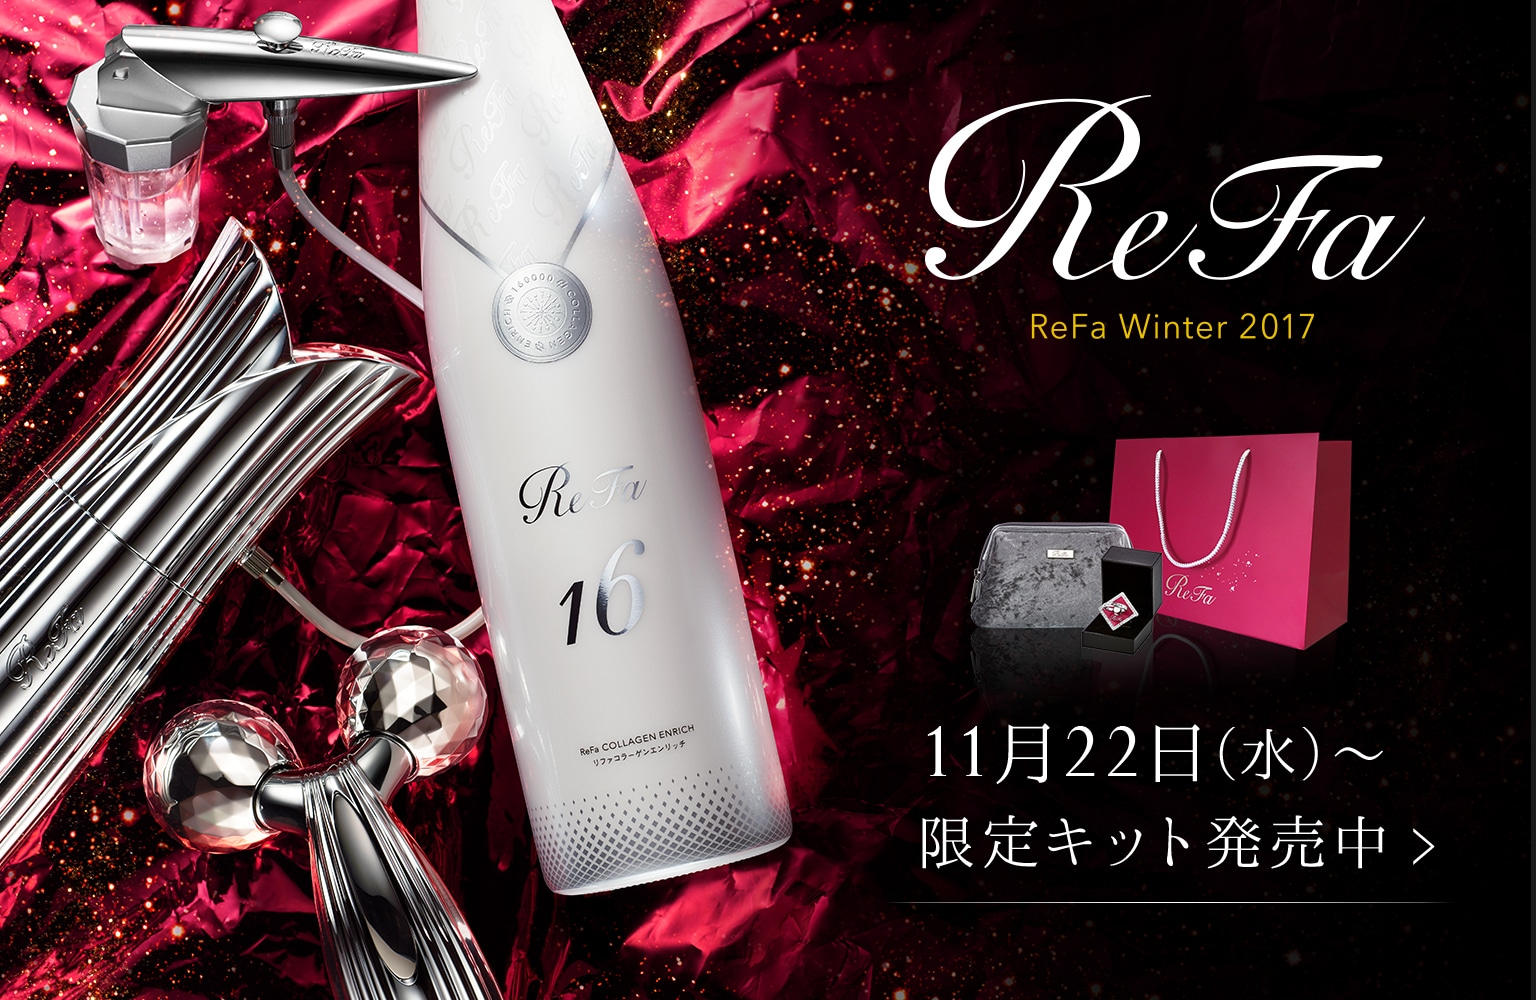 ReFa Winter 2017